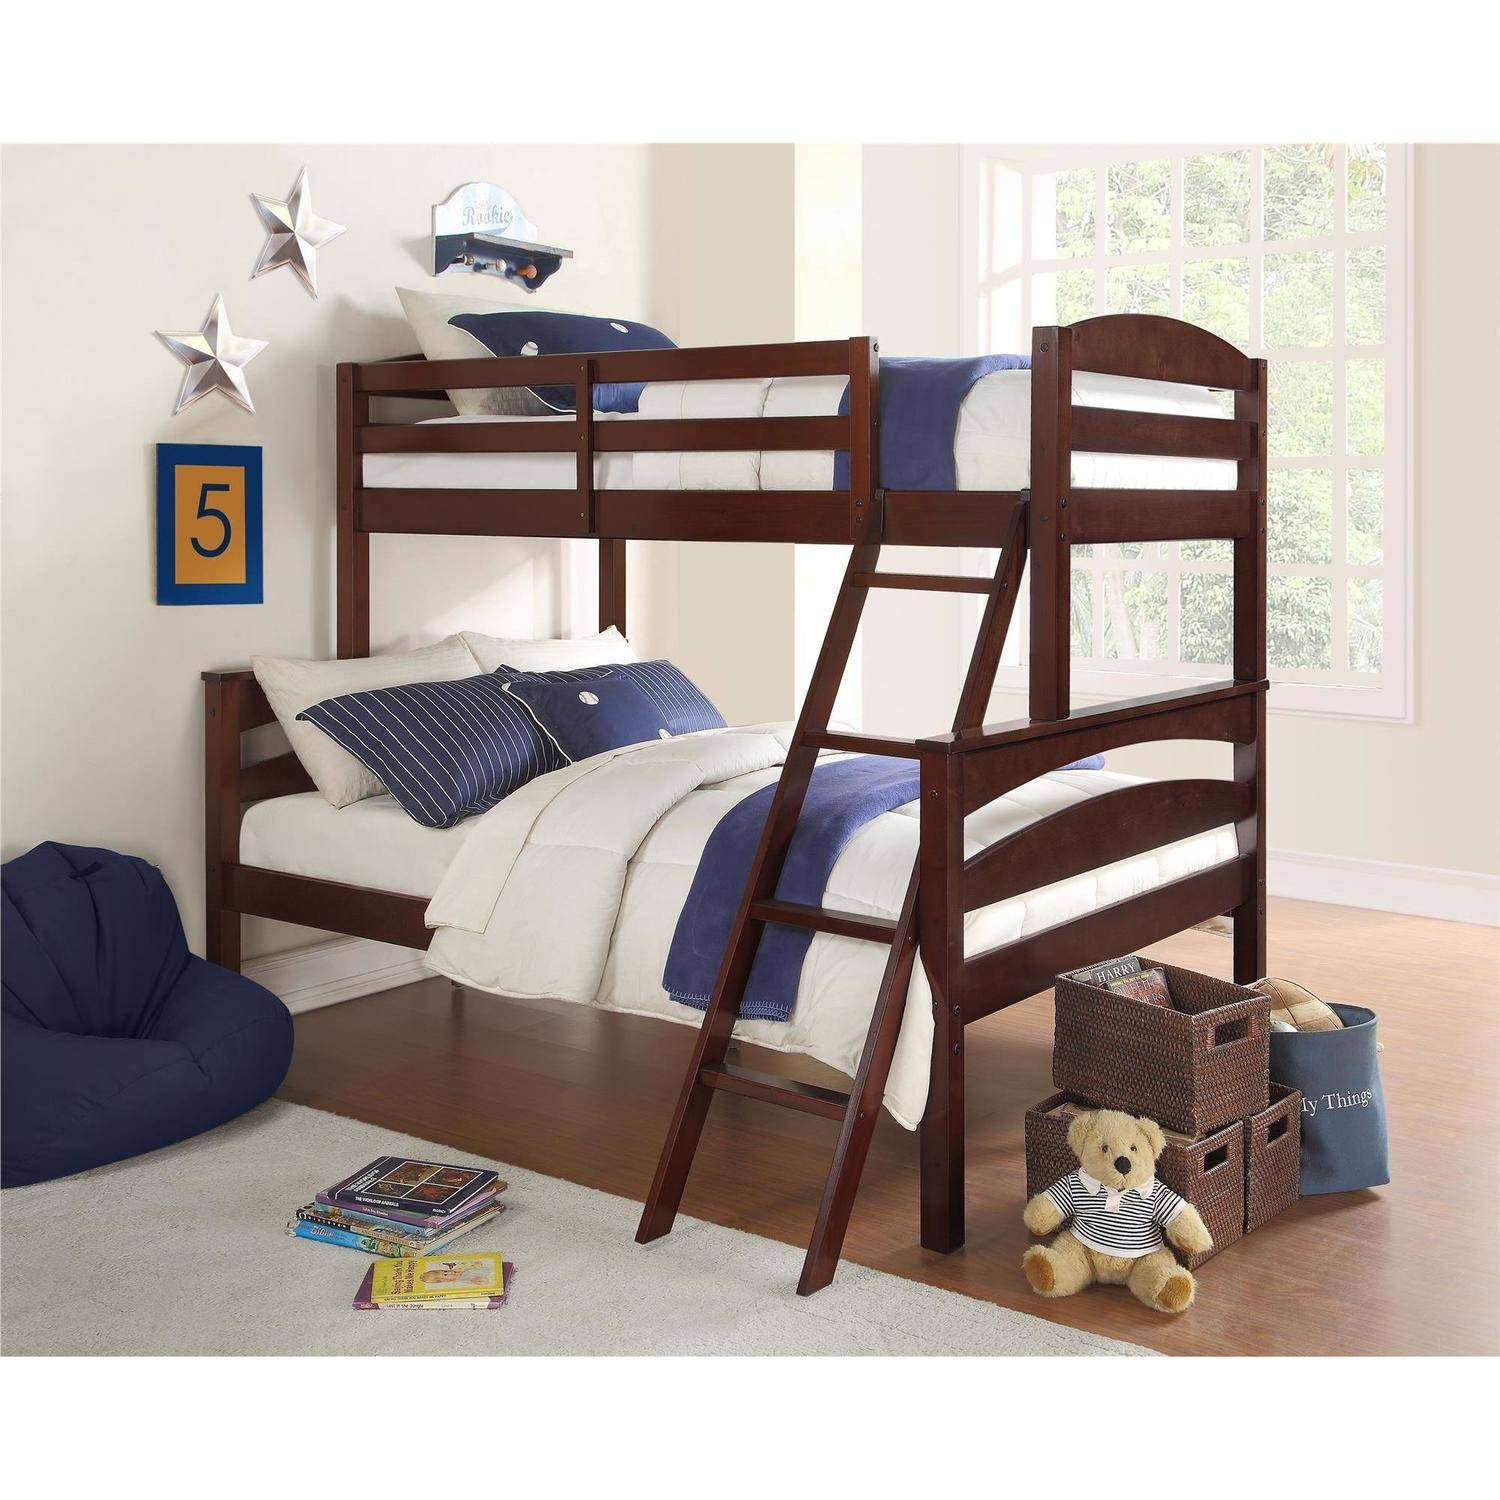 Better Homes and Gardens Leighton Twin-Over-Full Bunk Bed, Multiple Colors